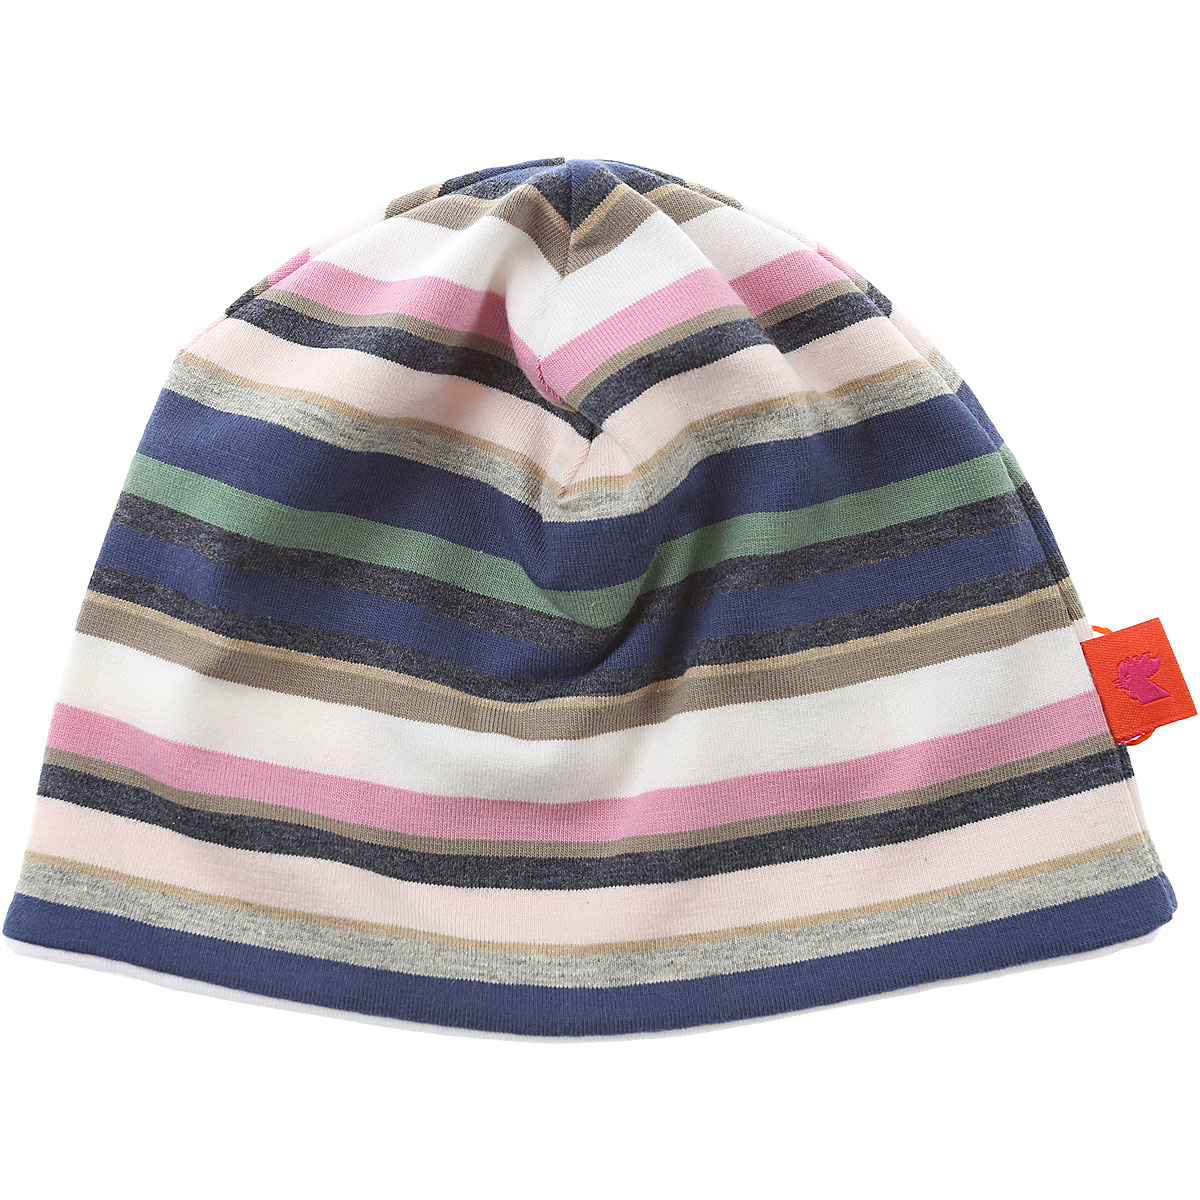 Gallo Baby Hats for Girls in Outlet Pink Canada - GOOFASH - Womens HATS